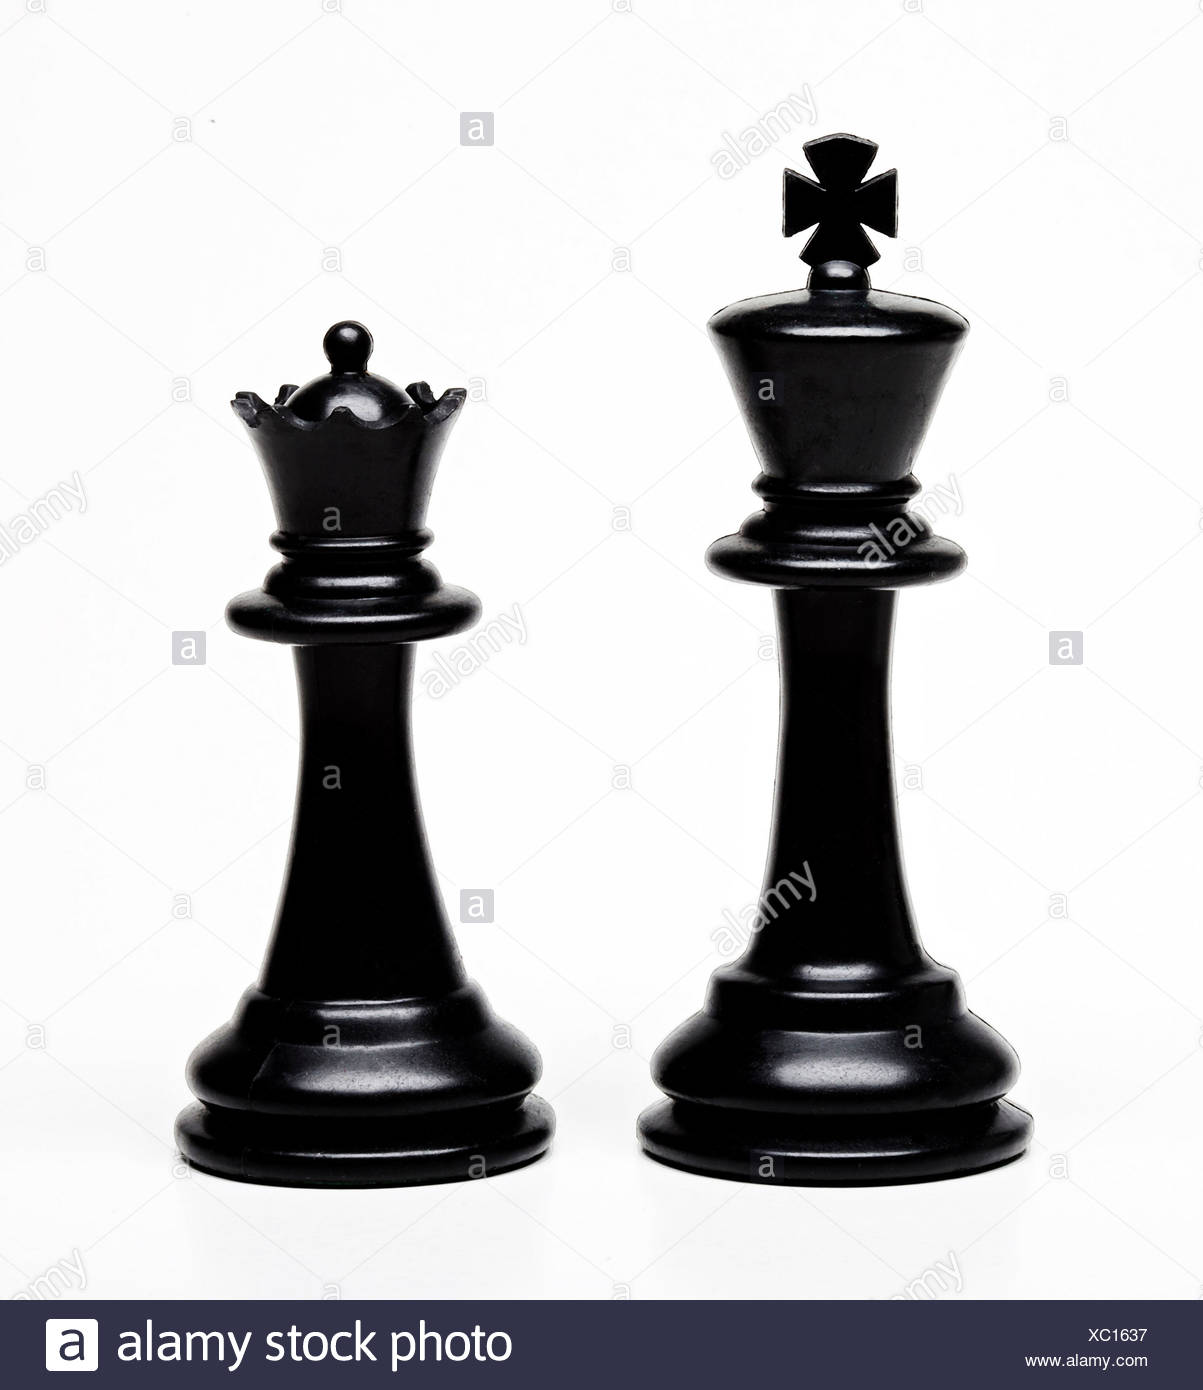 Chess king and queen pieces Stock Photo